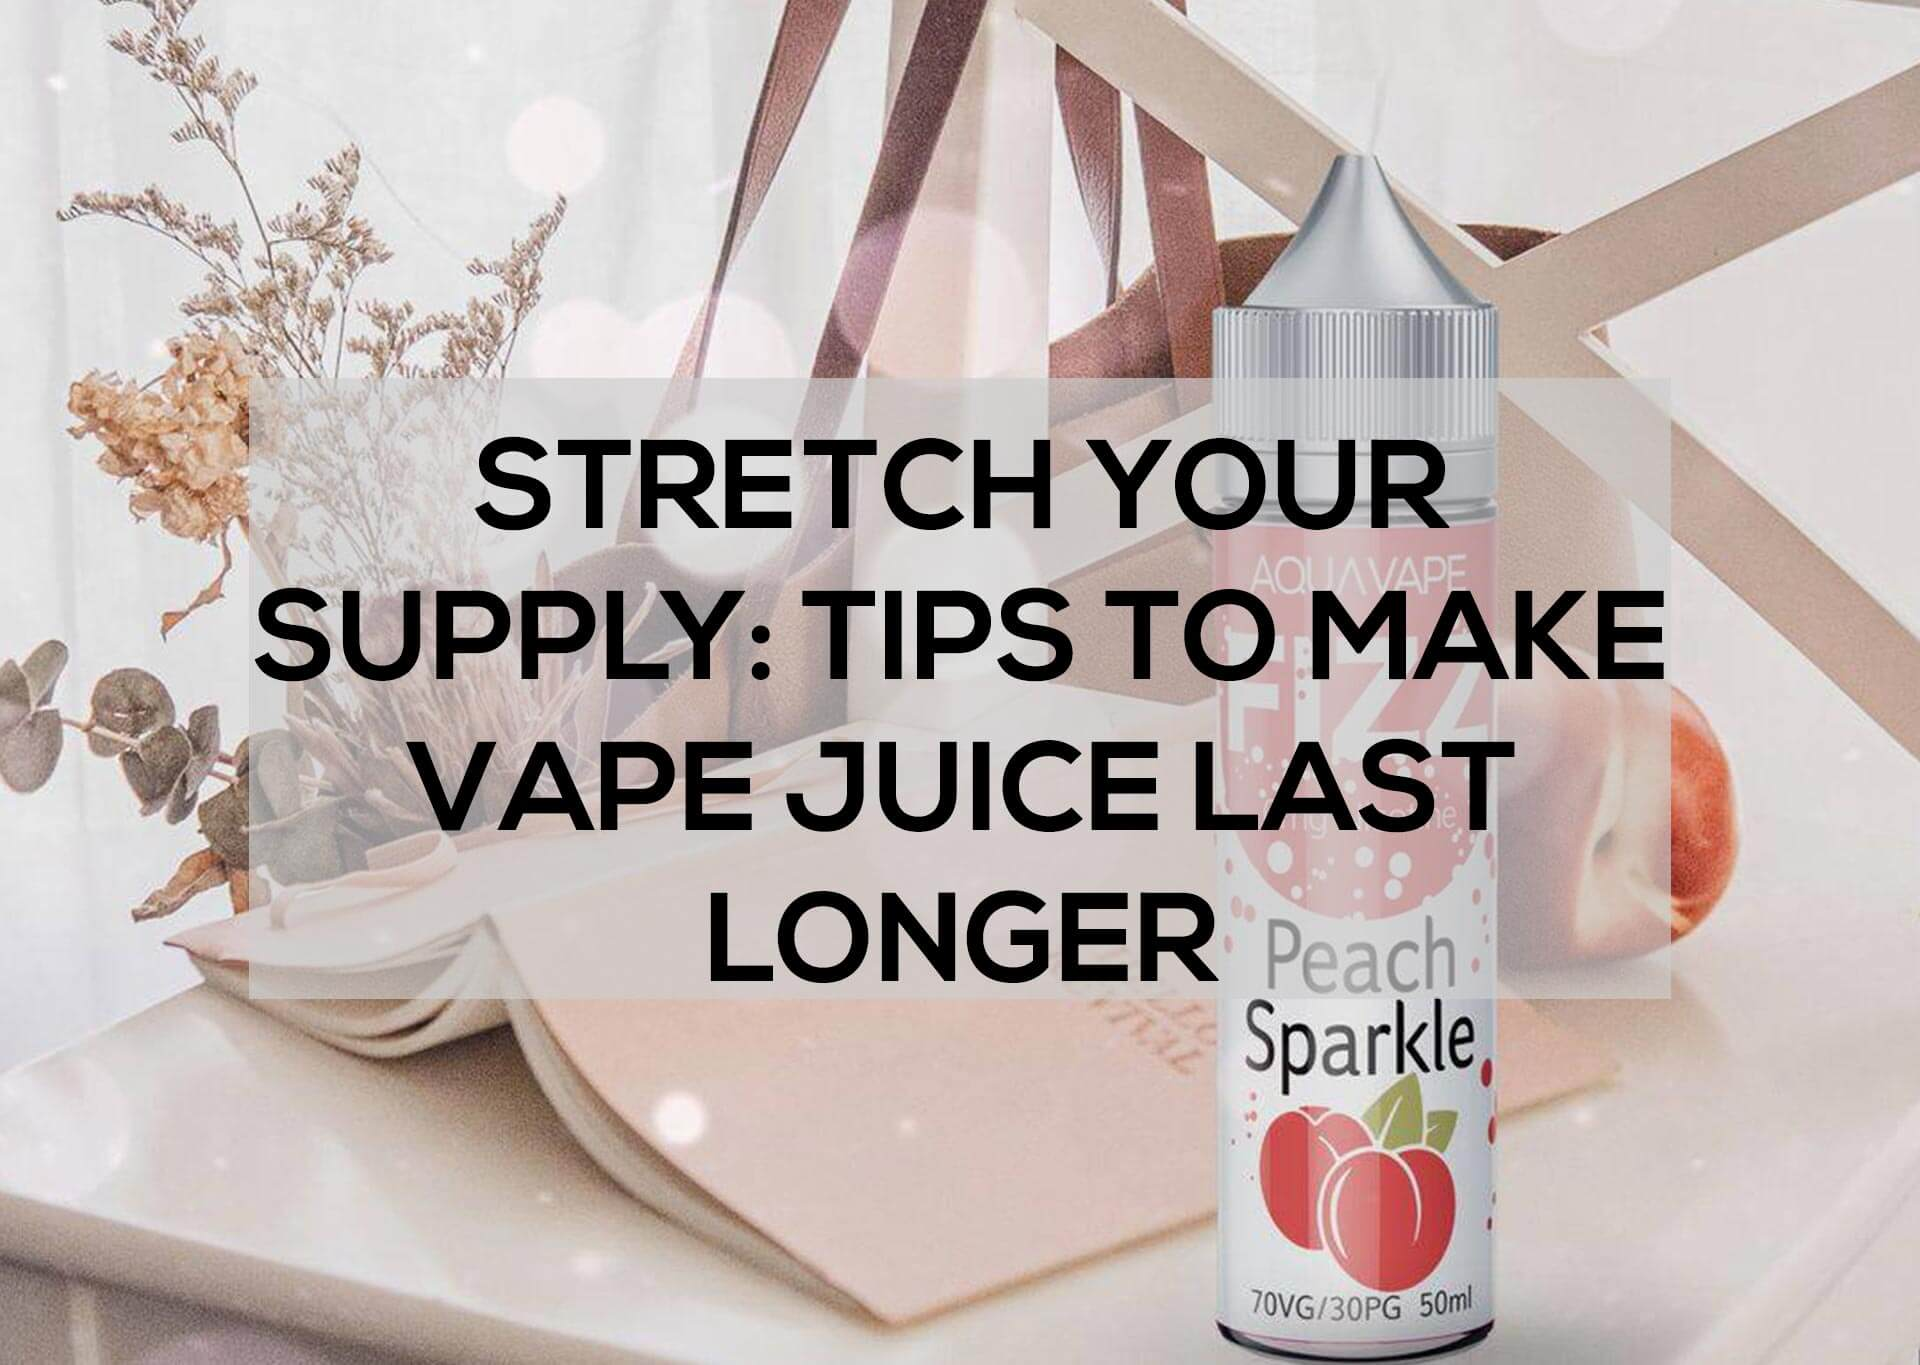 Stretch-Your-Supply--Tips-to-Make-Vape-Juice-Last-Longer